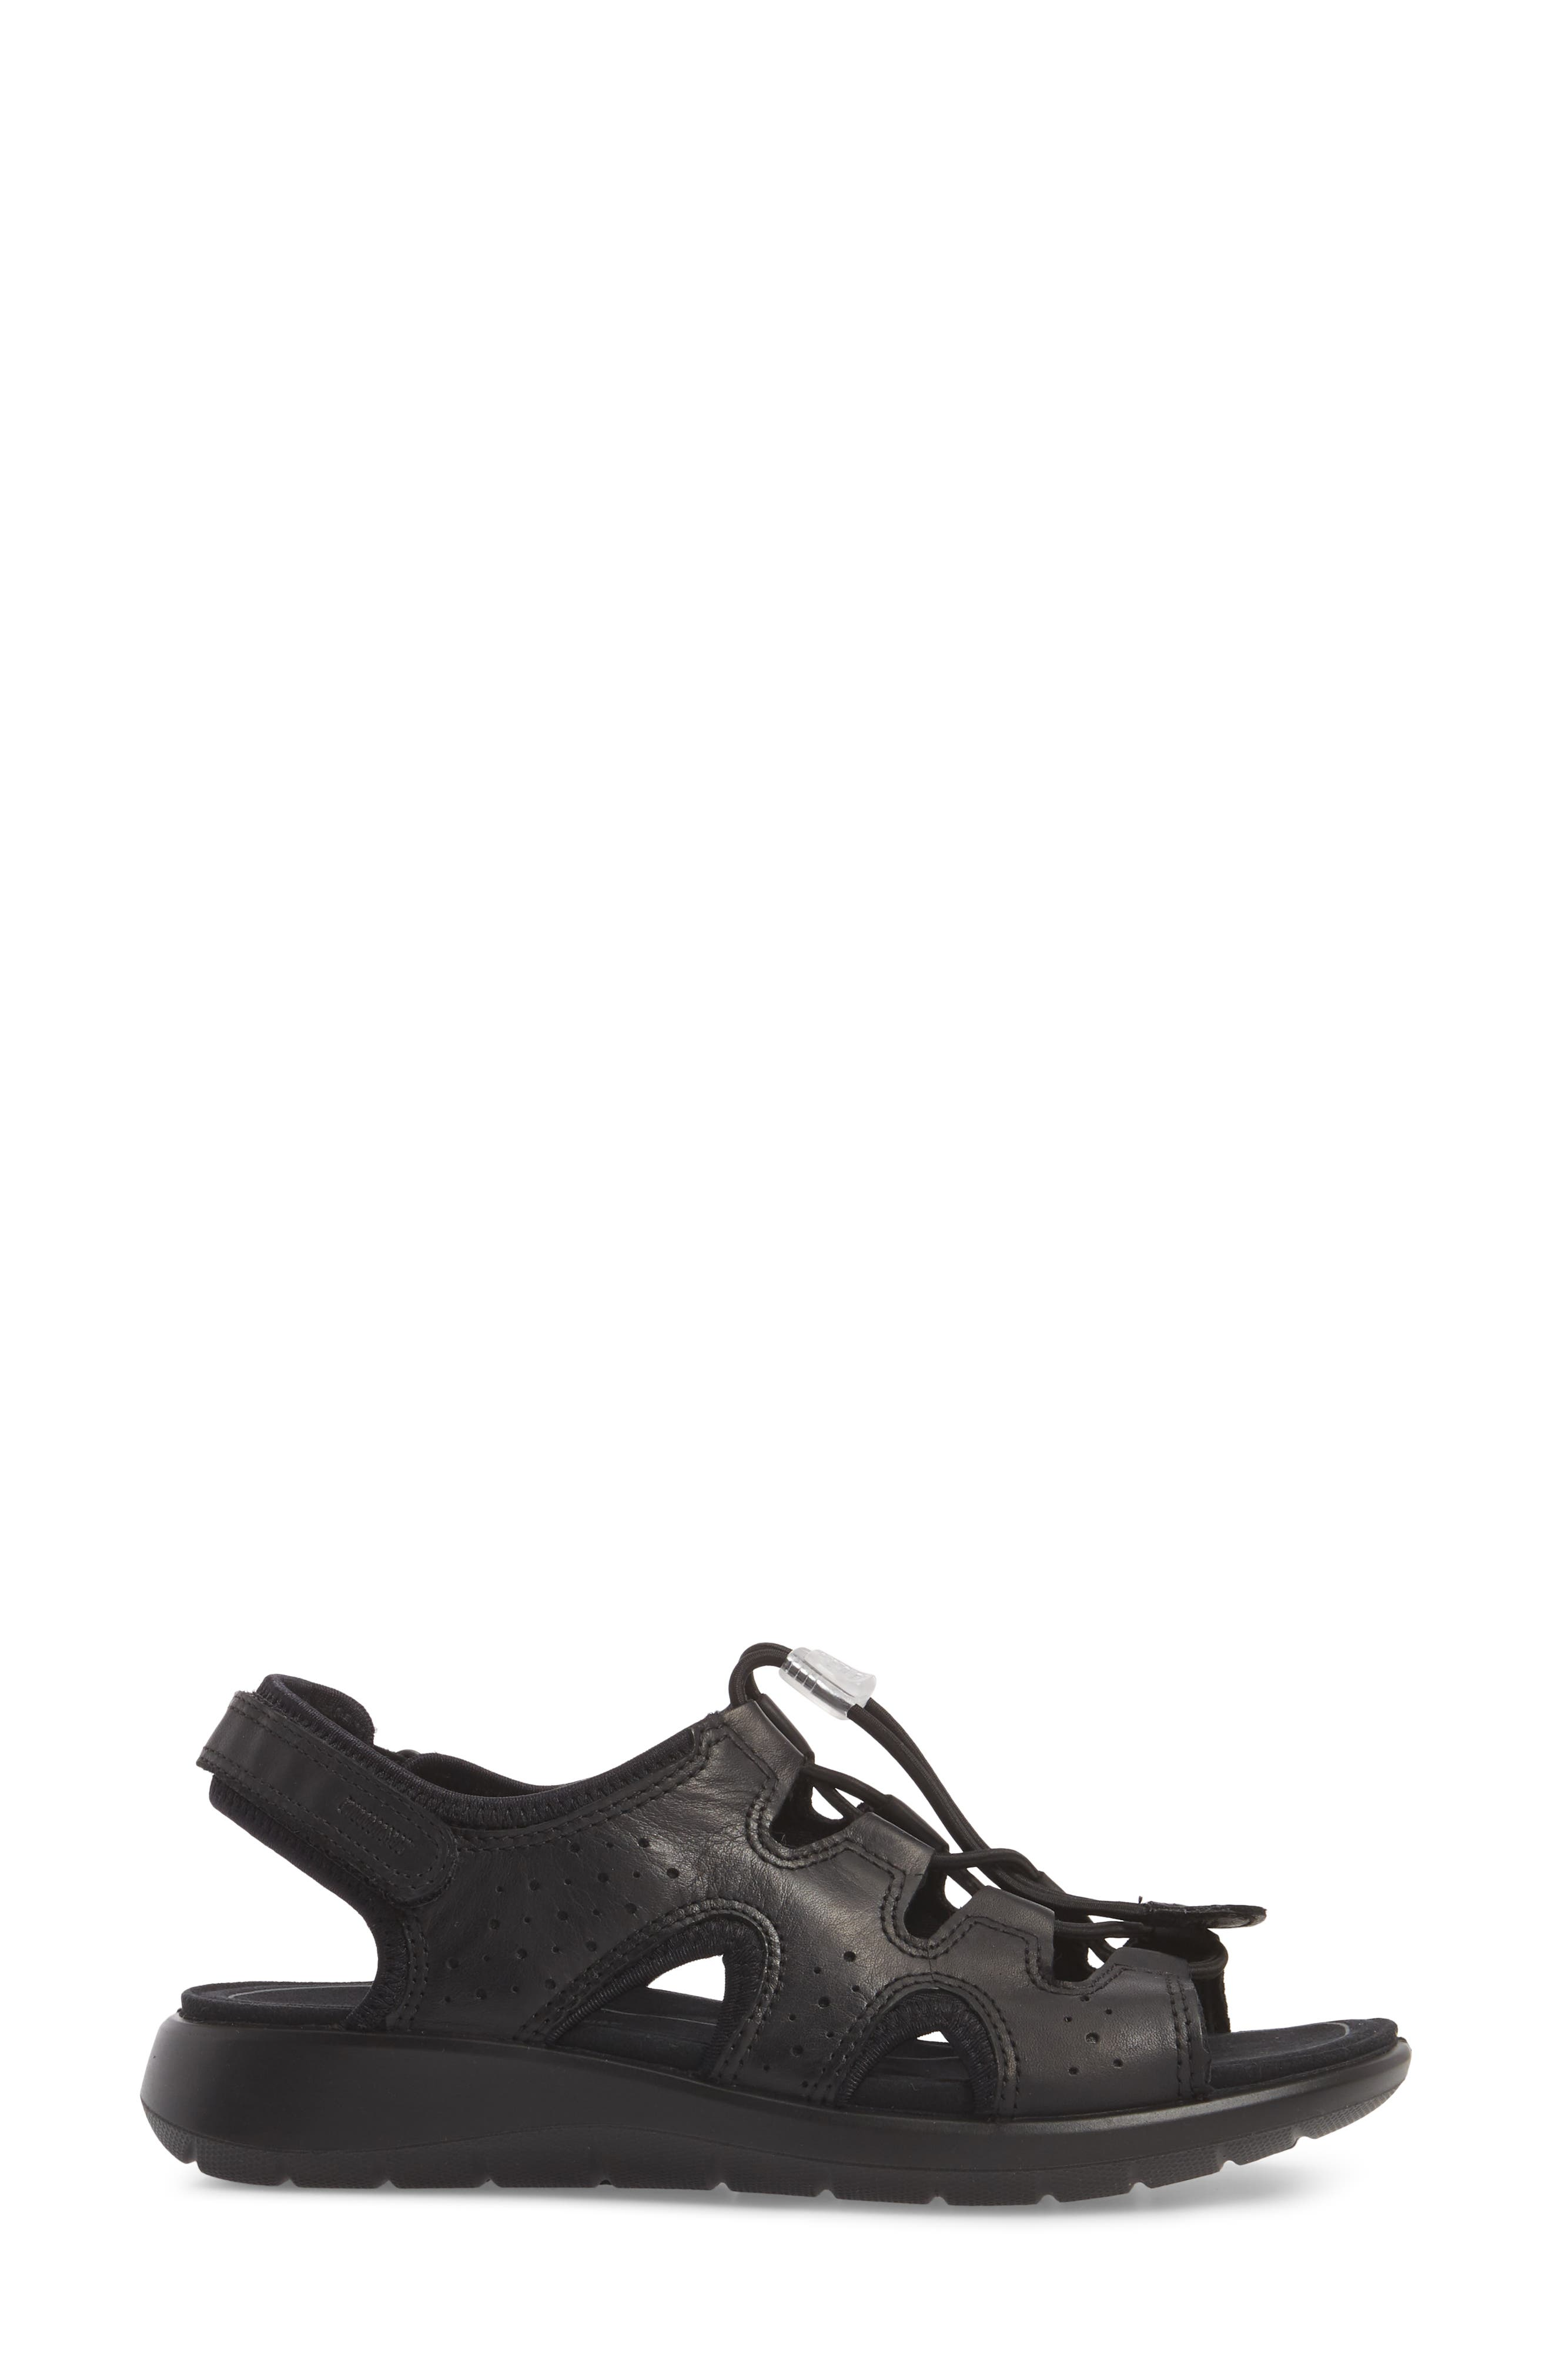 Bluma Toggle Sandal,                             Alternate thumbnail 3, color,                             001